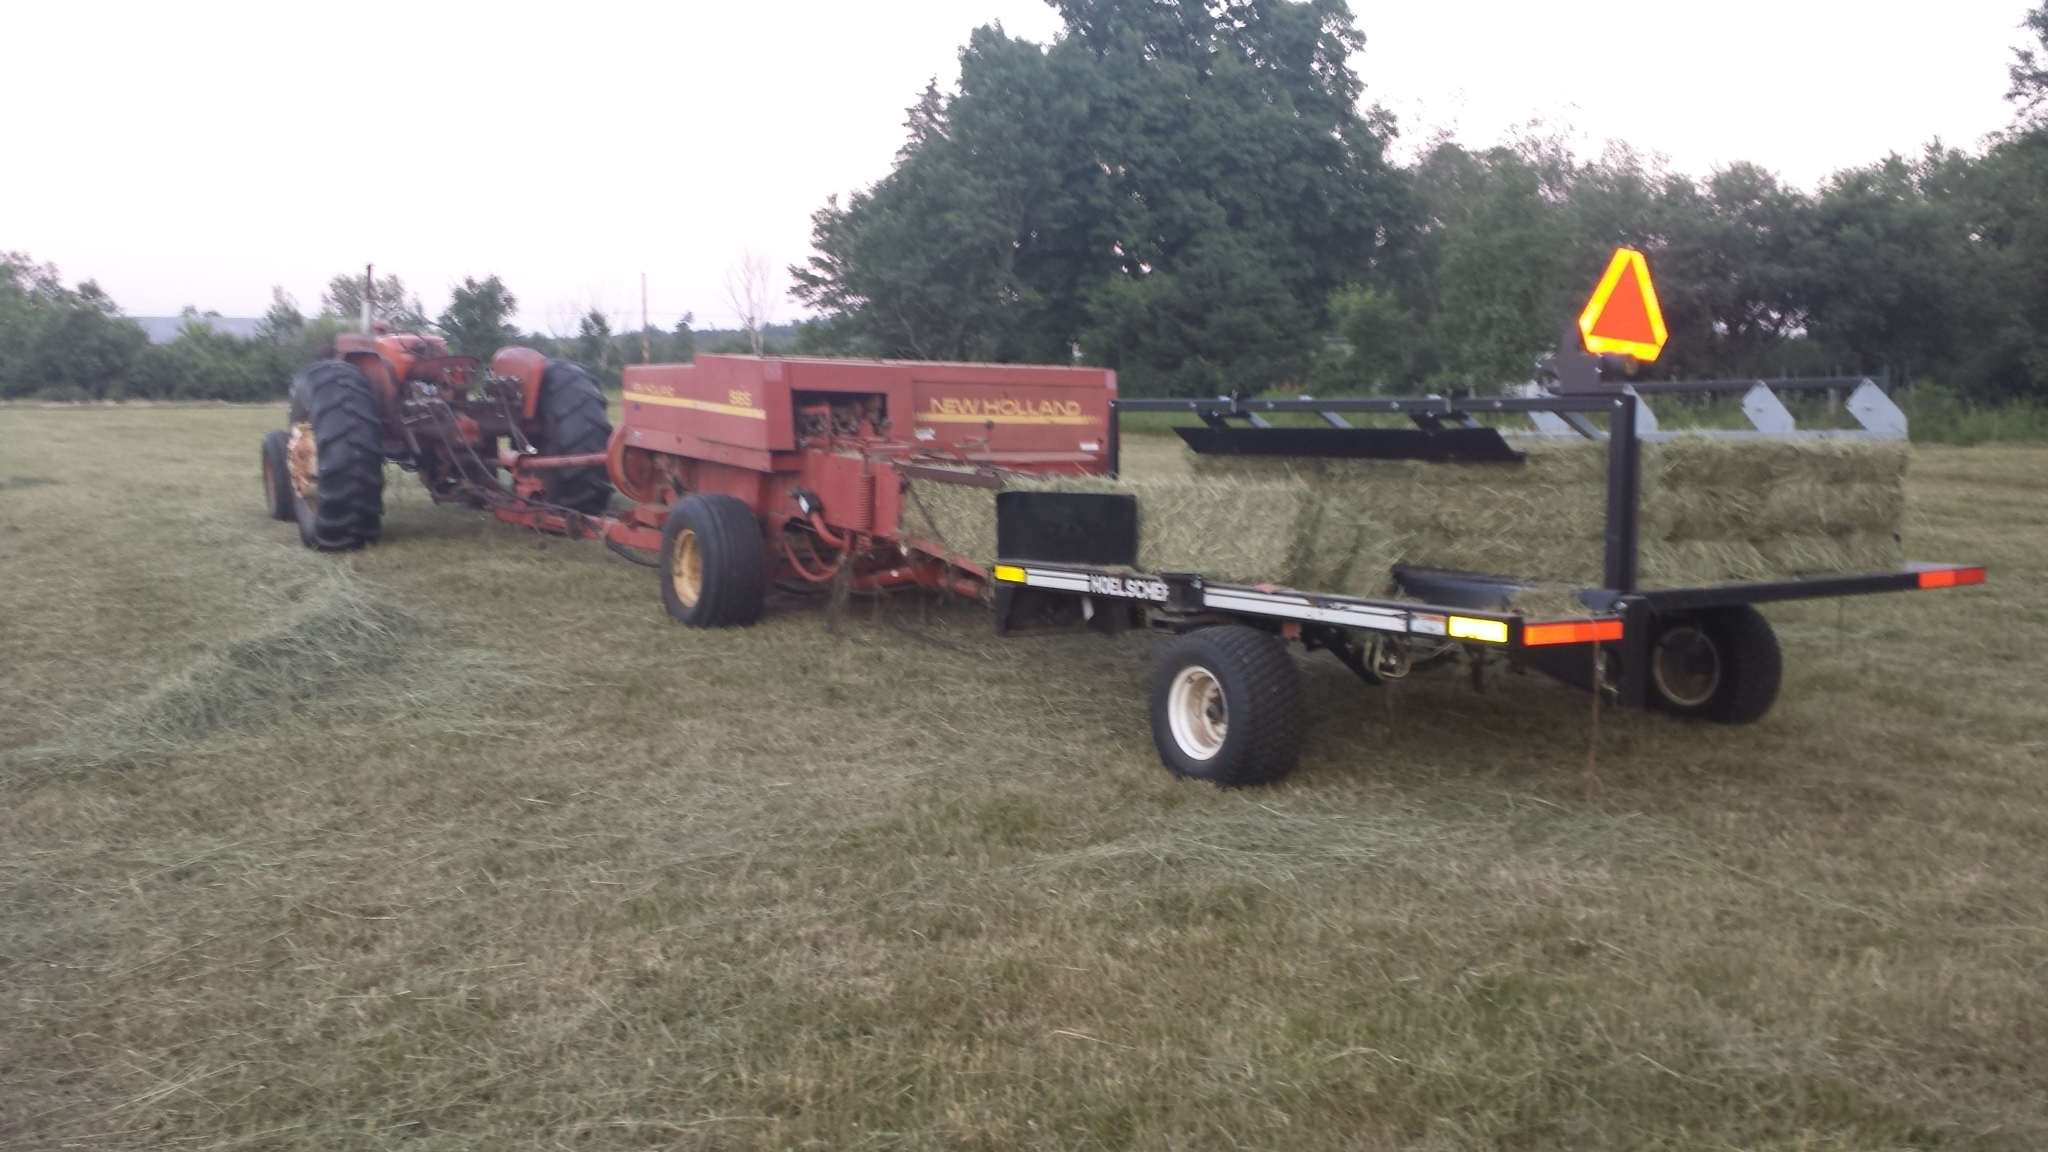 Allis chalmers d17 tractor - For Sale - Drive On Wood!